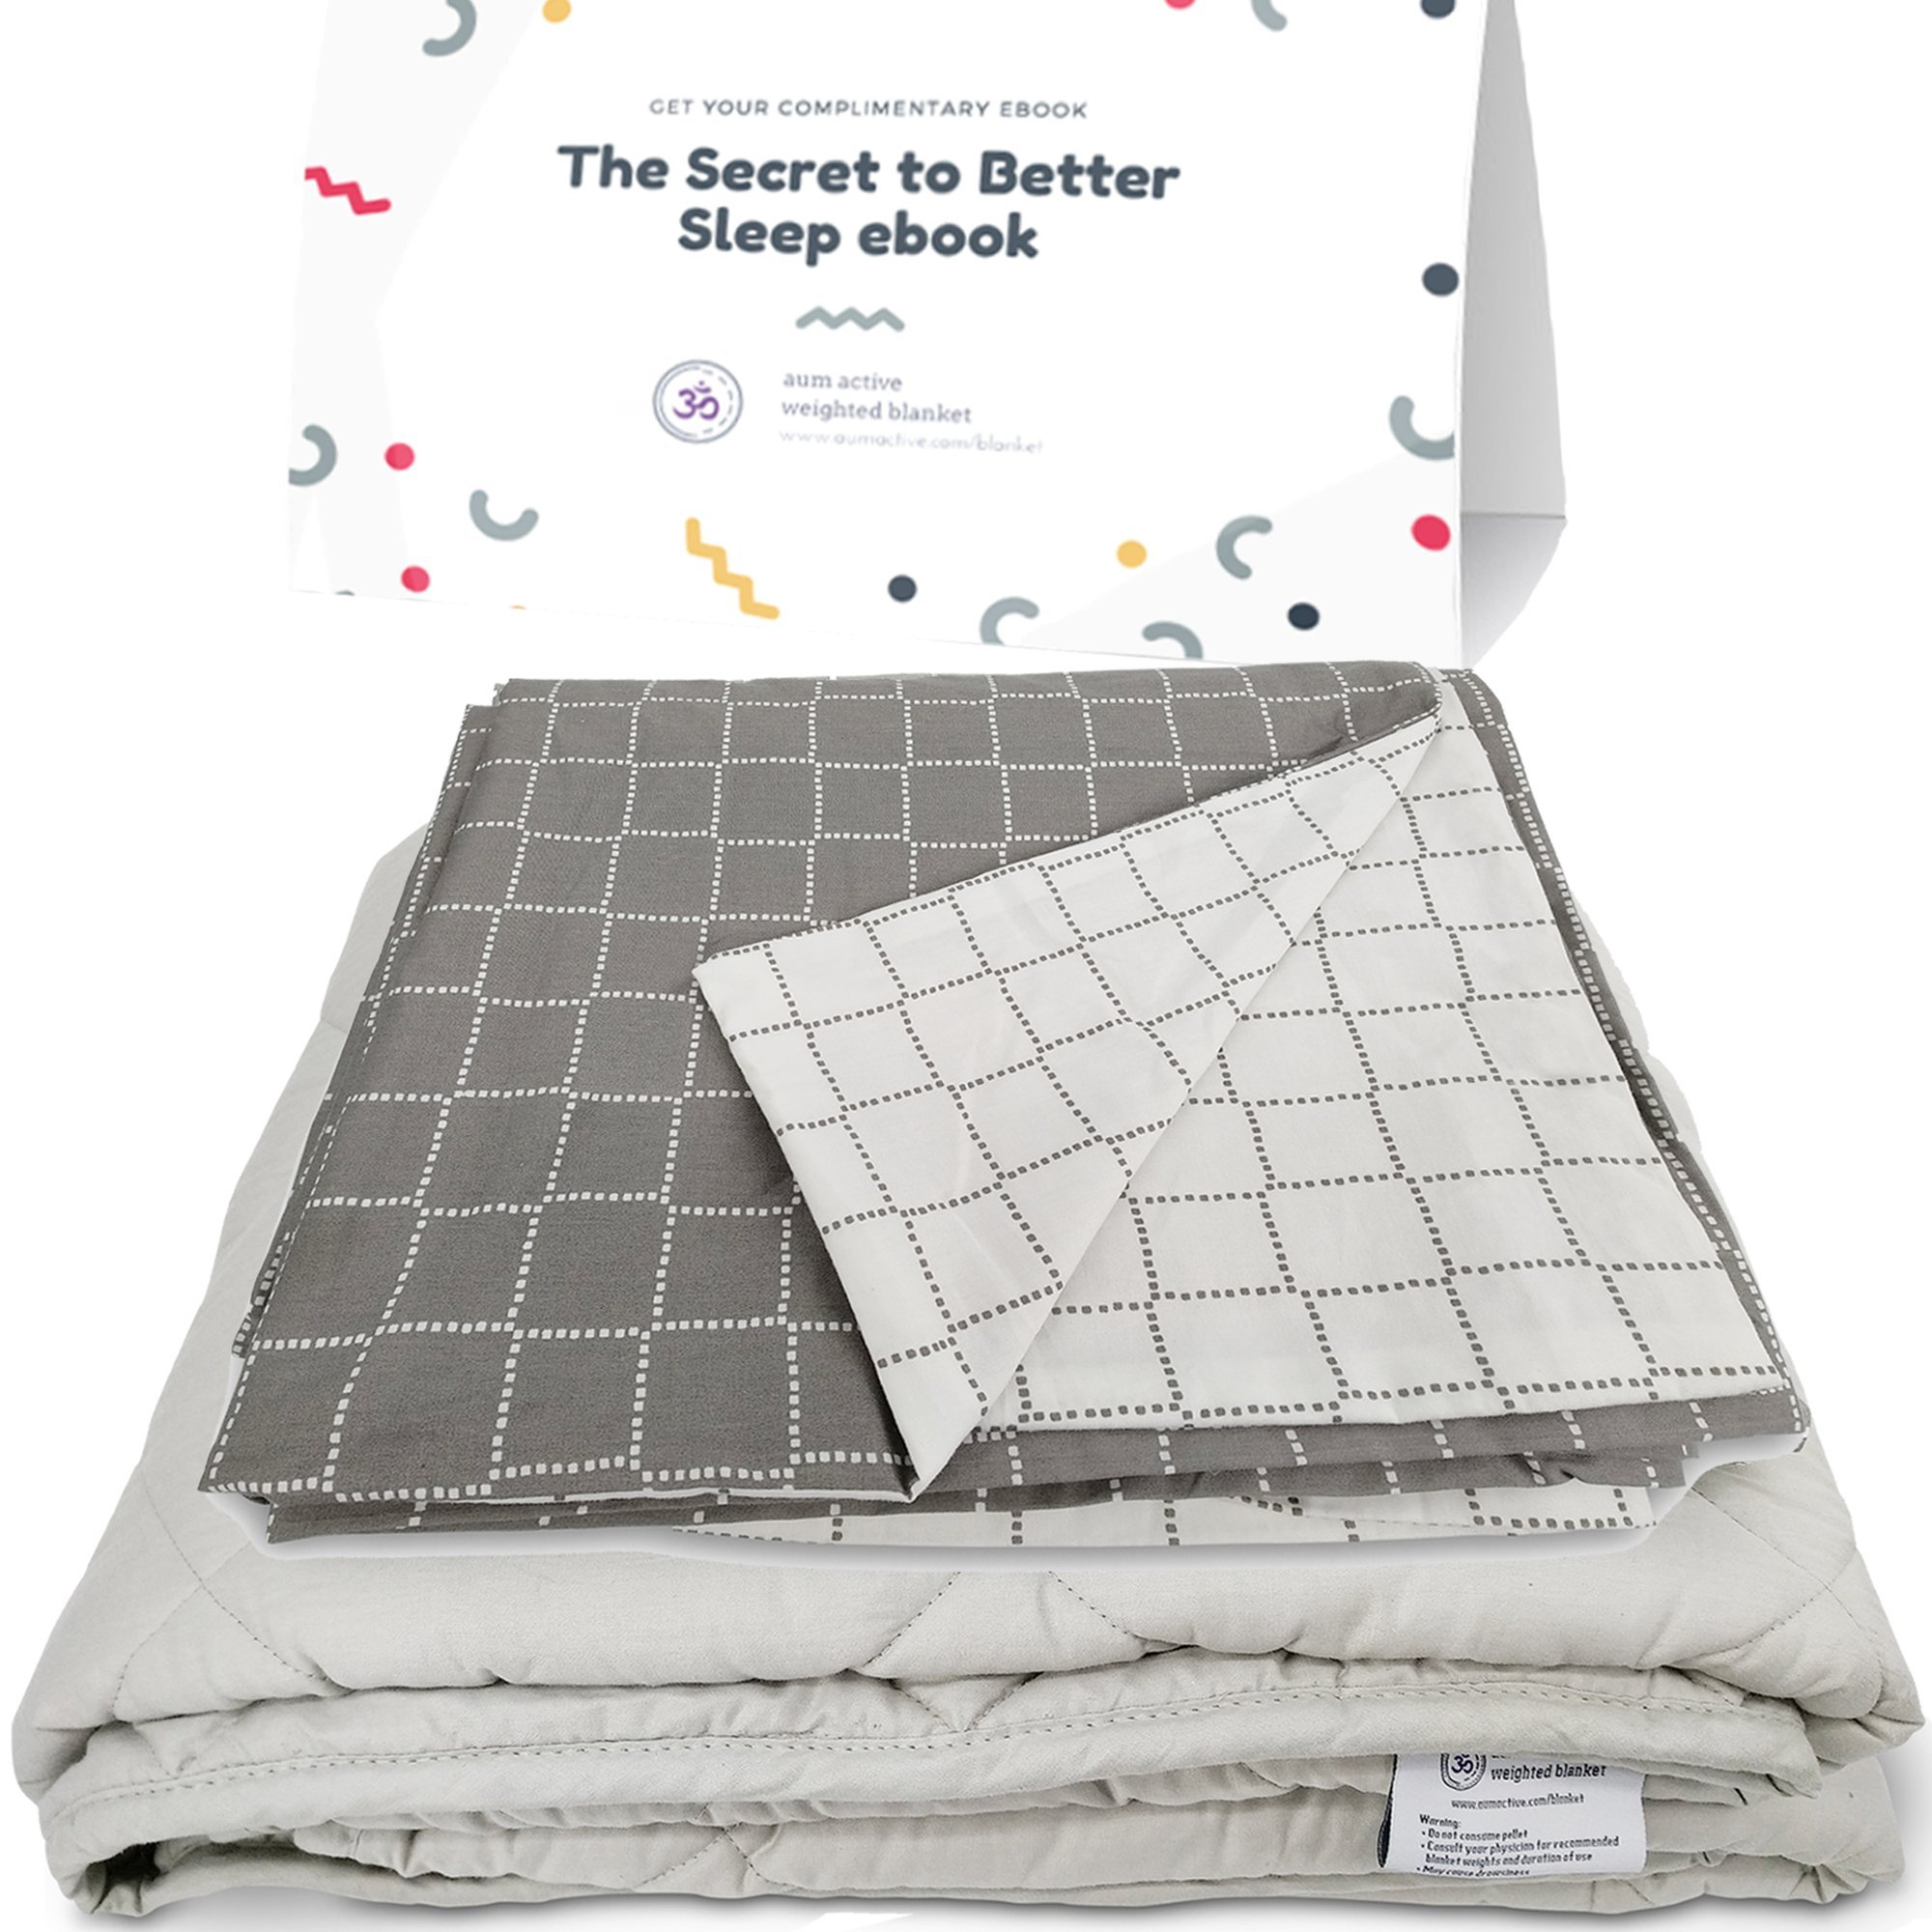 Weighted Blanket for Anxiety & Sleep - include Premium Cotton Cover & free Sleep Improvement ebook - Sensory Therapy Blanket for Adult & Kids with Insomnia, Restless Legs, Autism (59x78'', 20lbs) by Aum Active